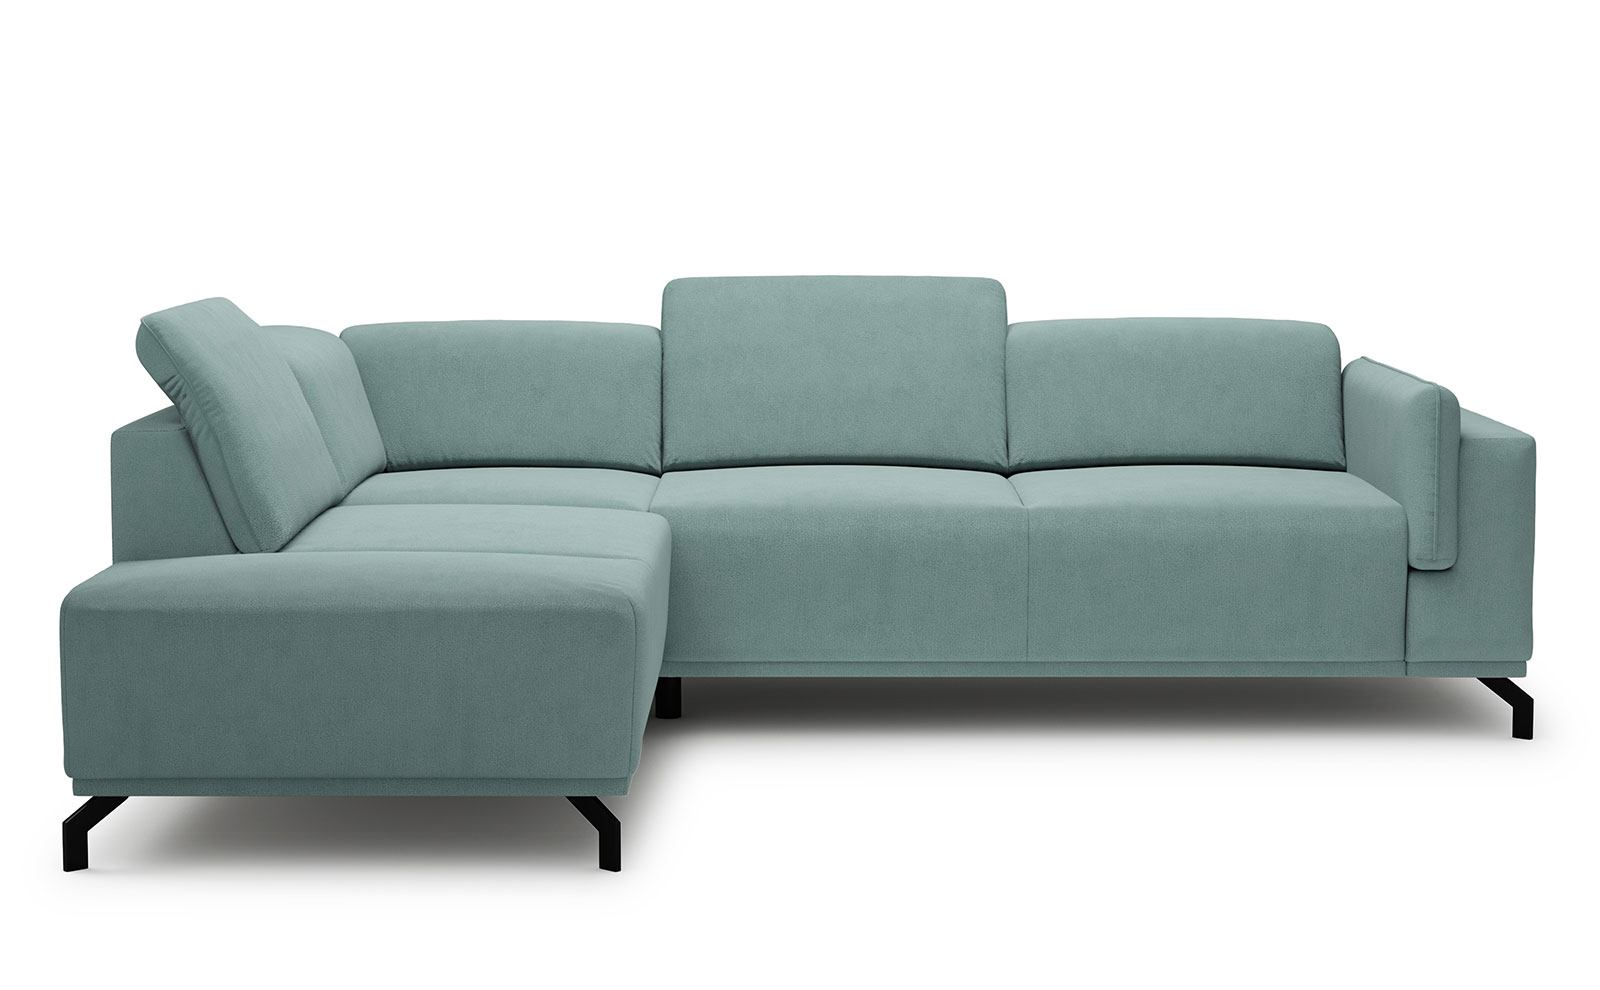 Busto Corner Sofa - soft touch mint